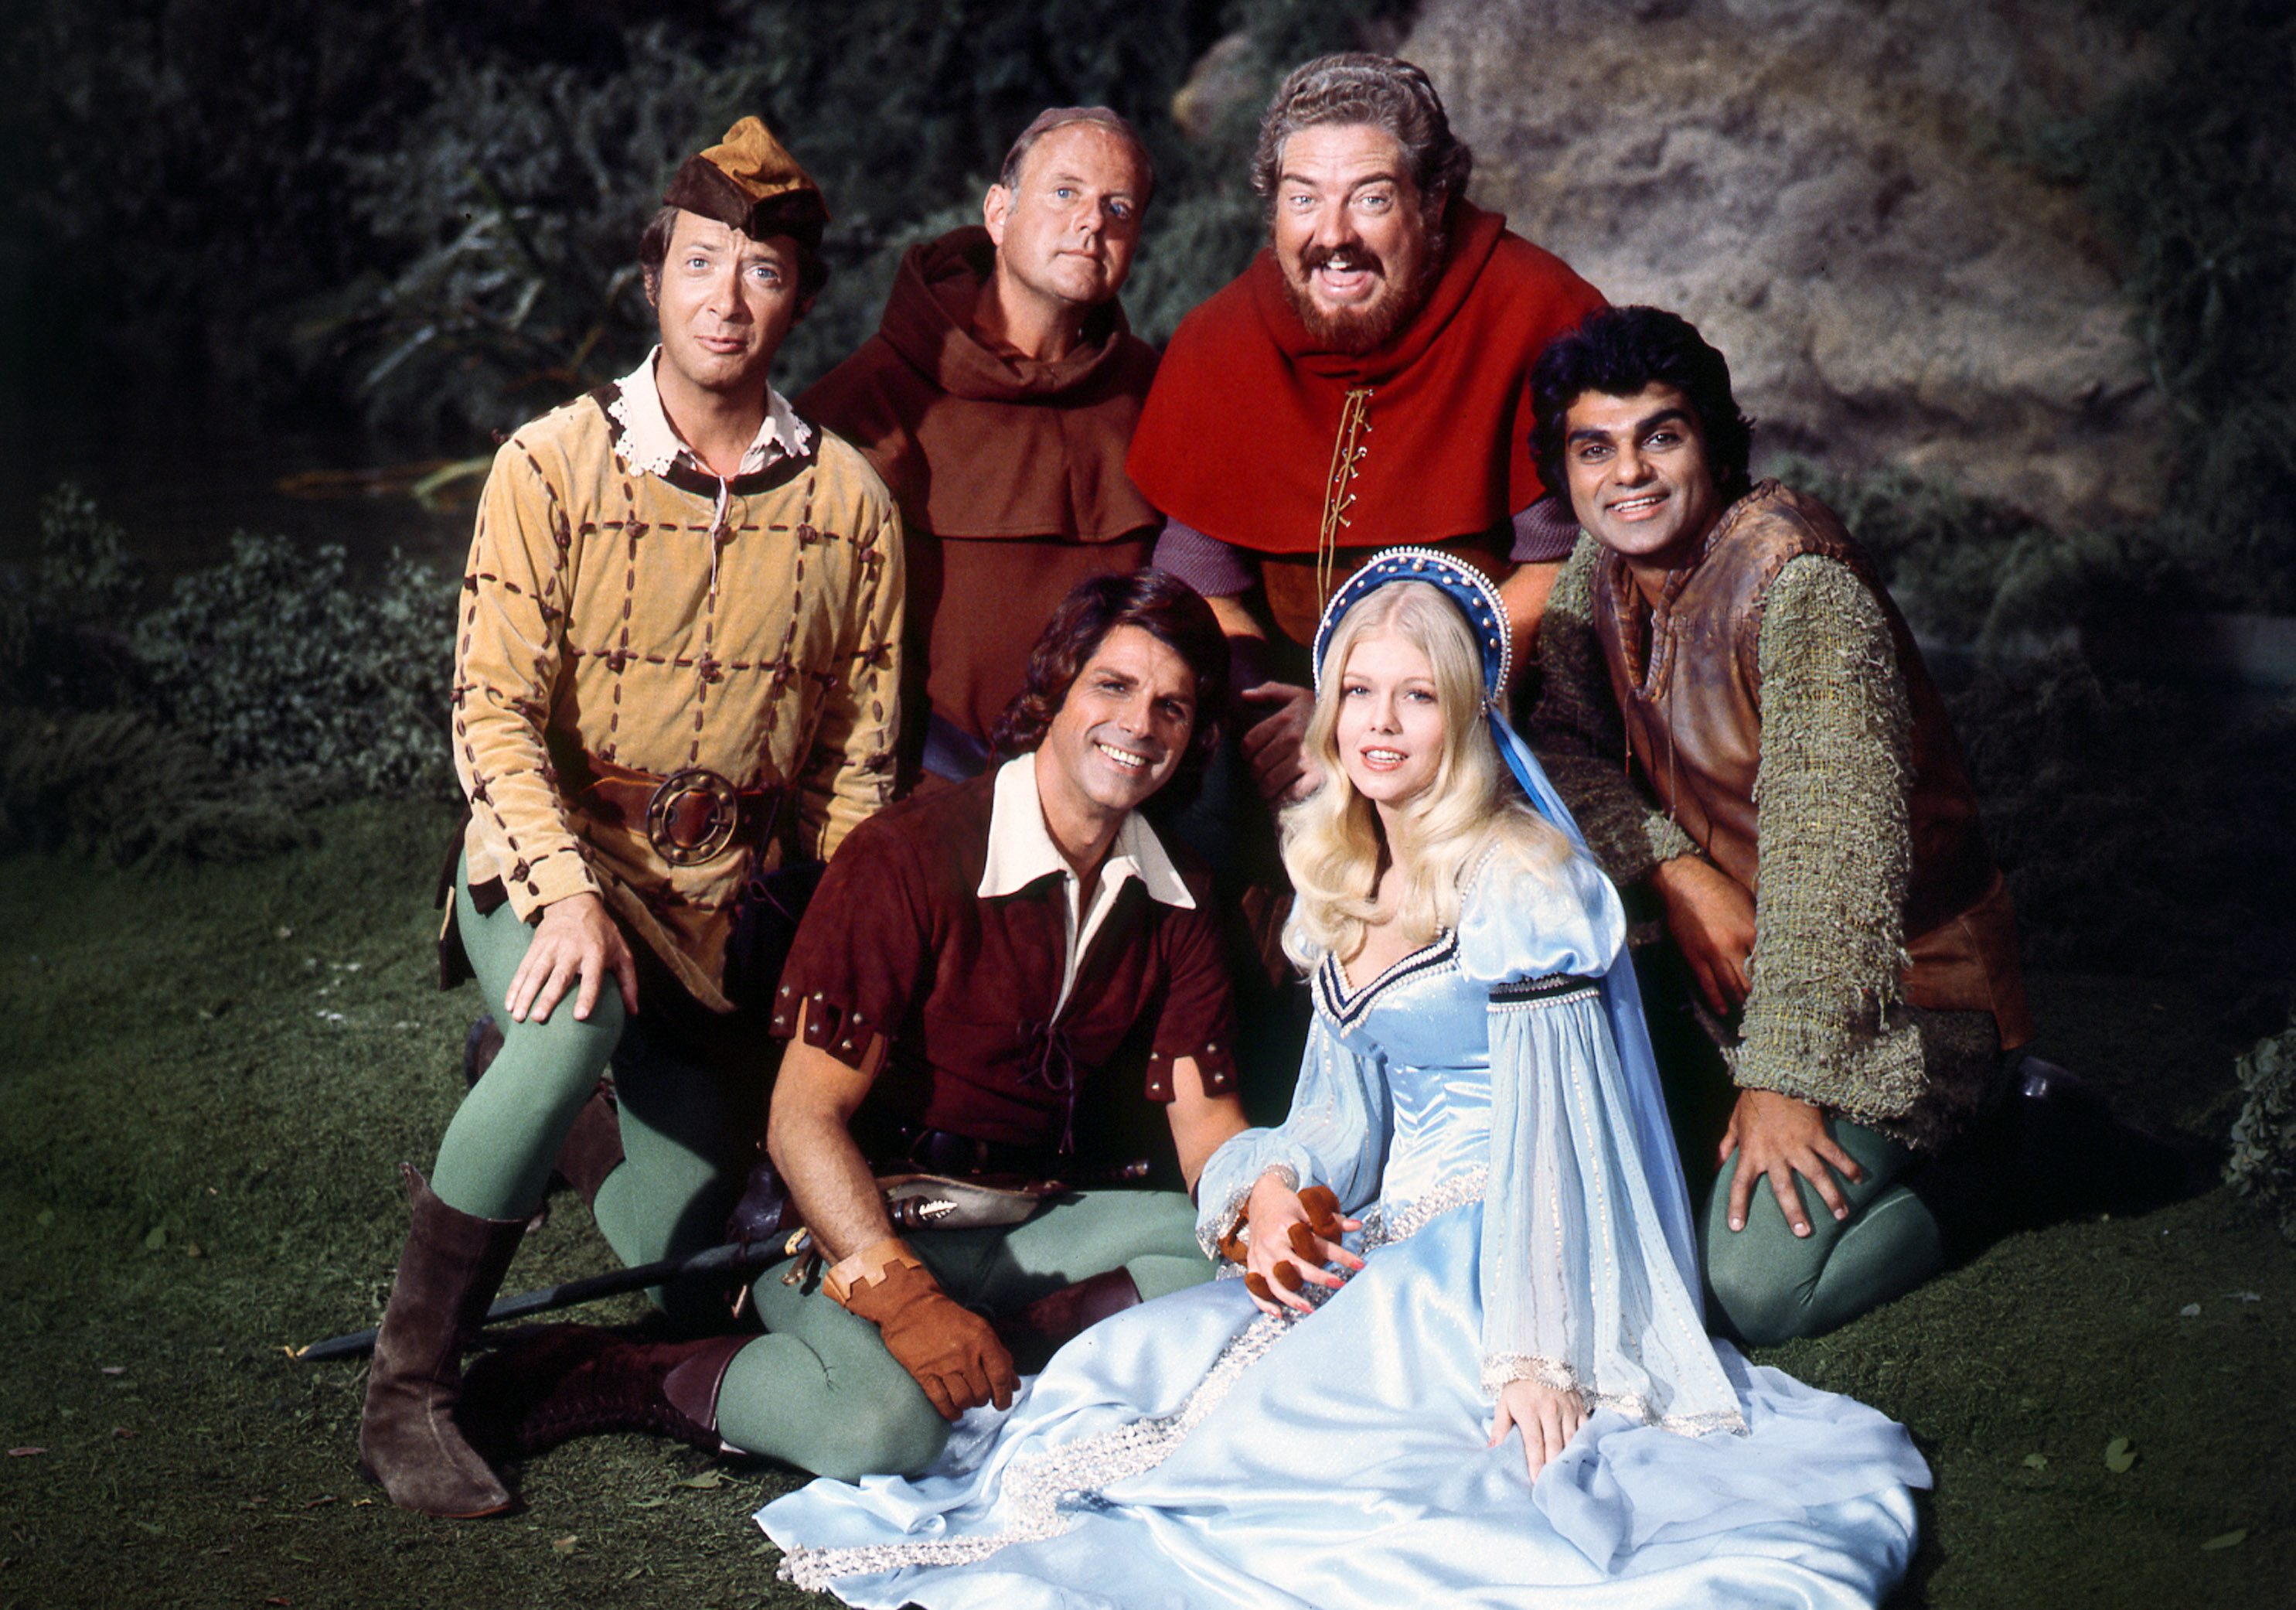 WHEN THINGS WERE ROTTEN - 1975 GALLERY BERNIE KOPELL, DICK VAN PATTEN, DAVID SABIN, RICHARD DIMITRI RICHARD GAUTIER, MISTY ROWE, IN FRONT